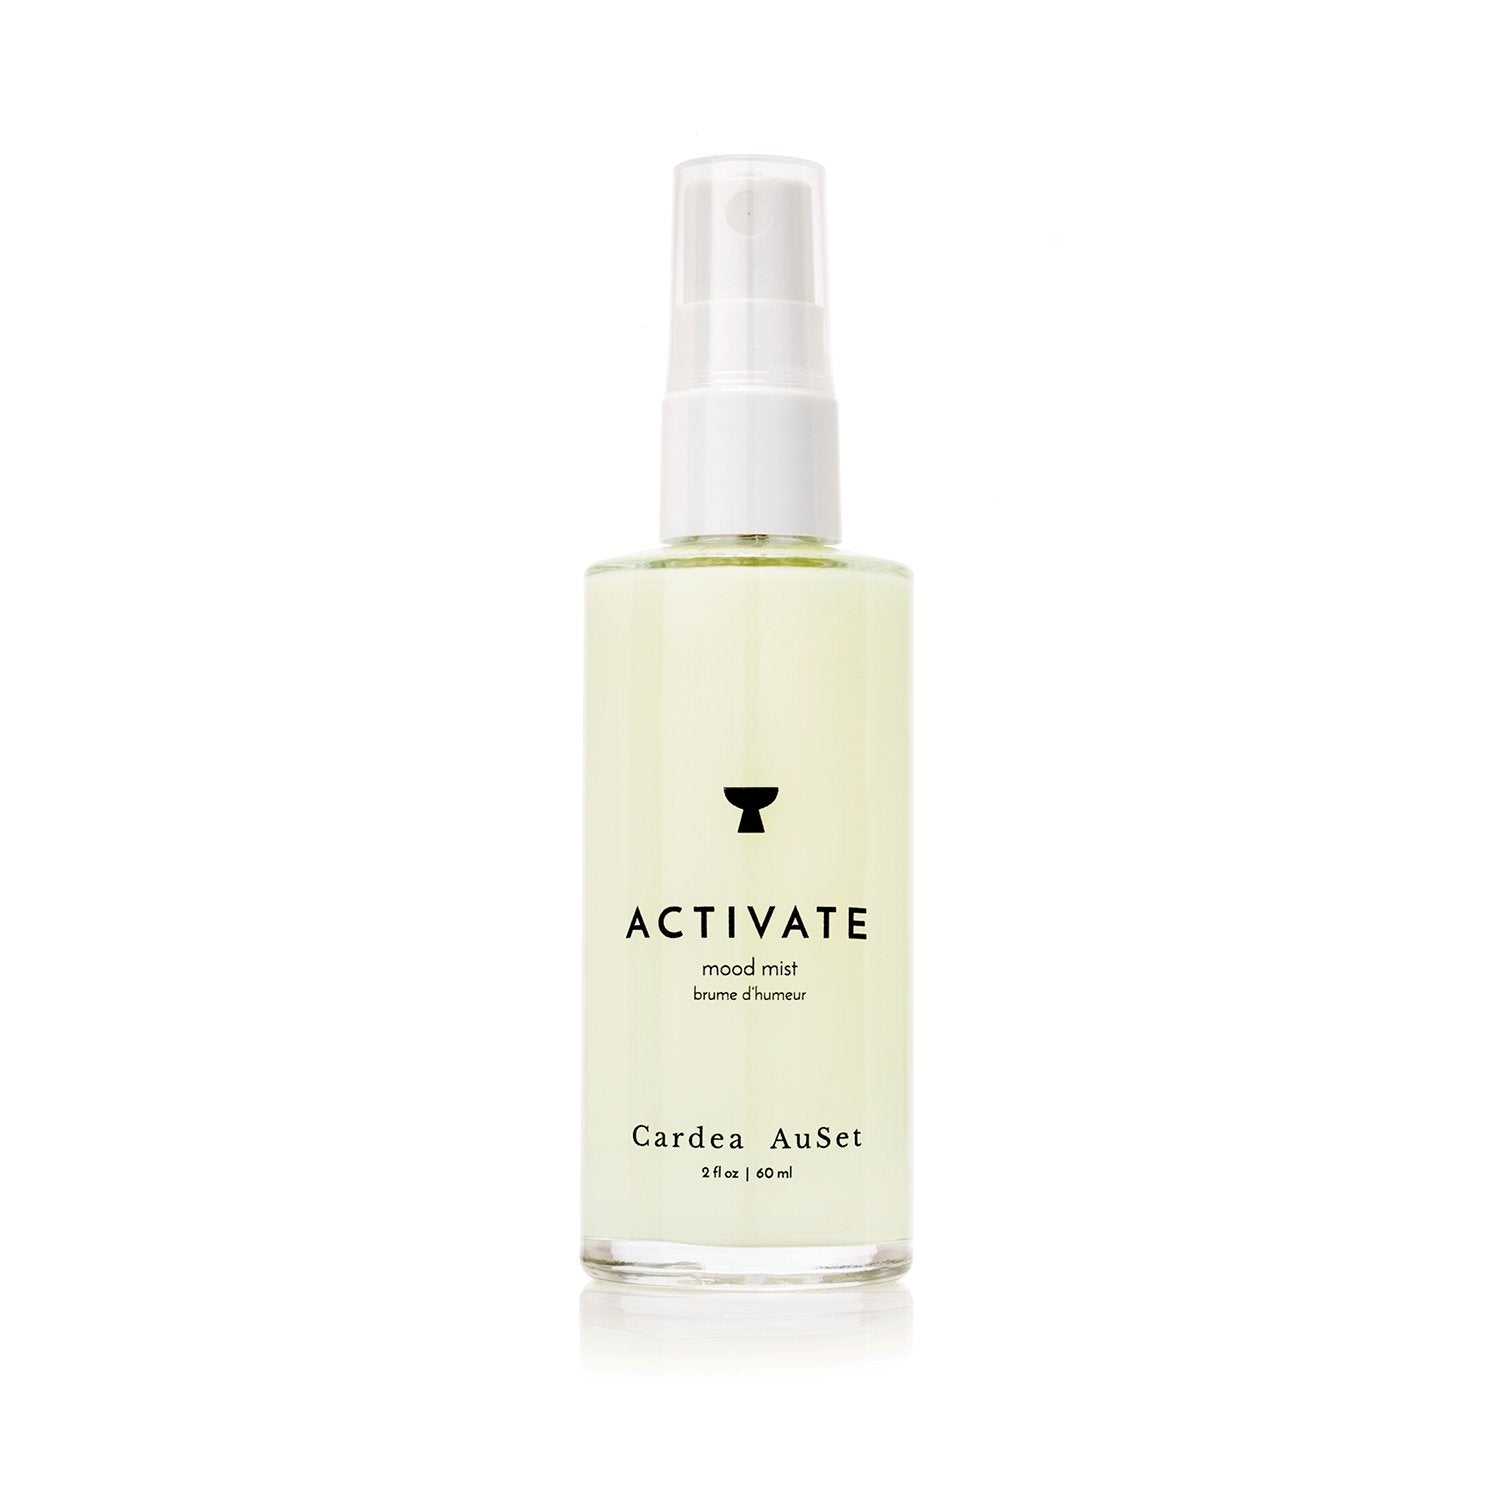 Activate Essential Oil Mist by Cardea AuSet